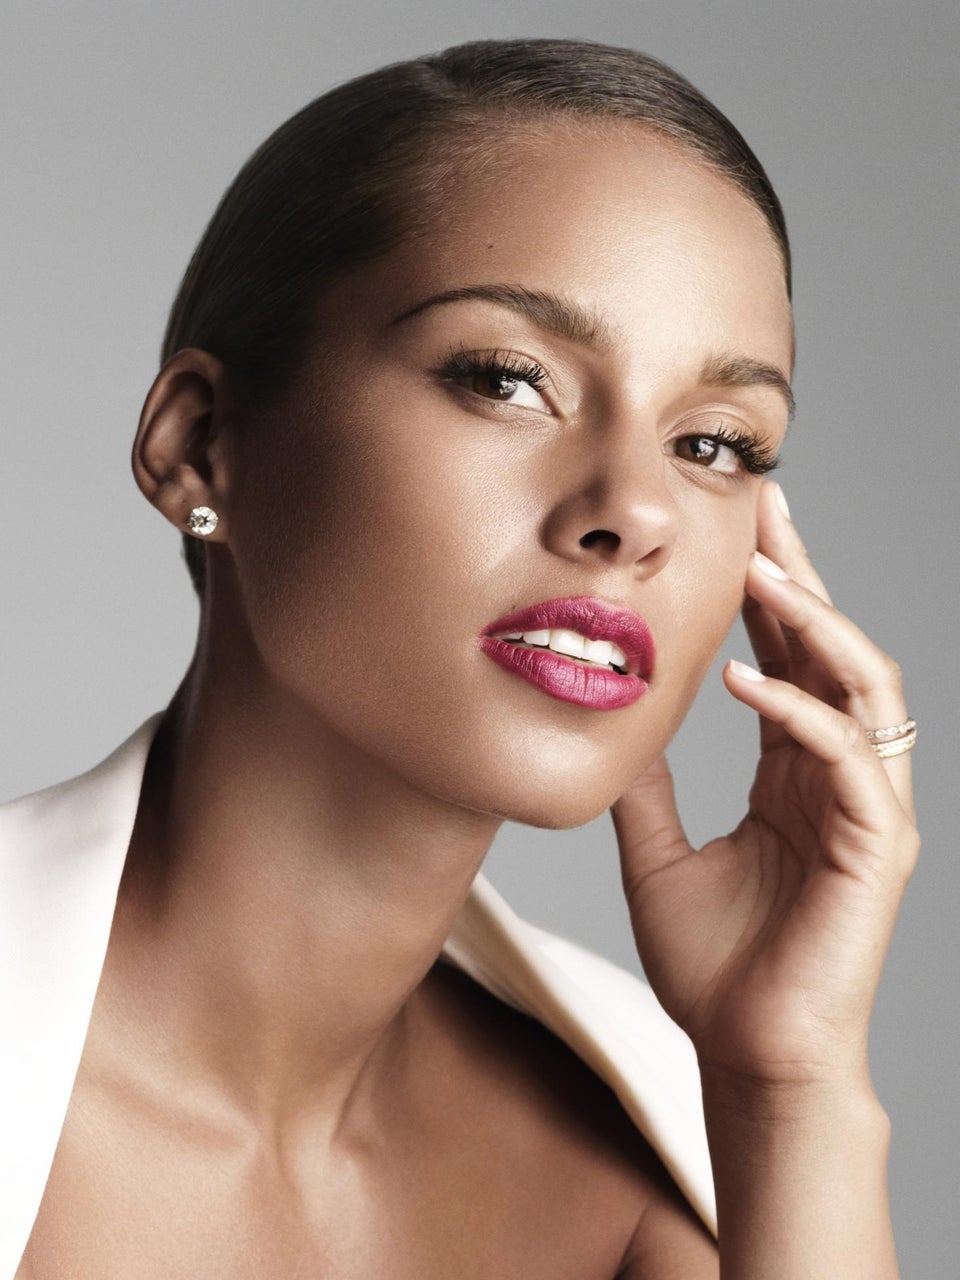 Alicia Keys Is the New Face of Parfums Givenchy